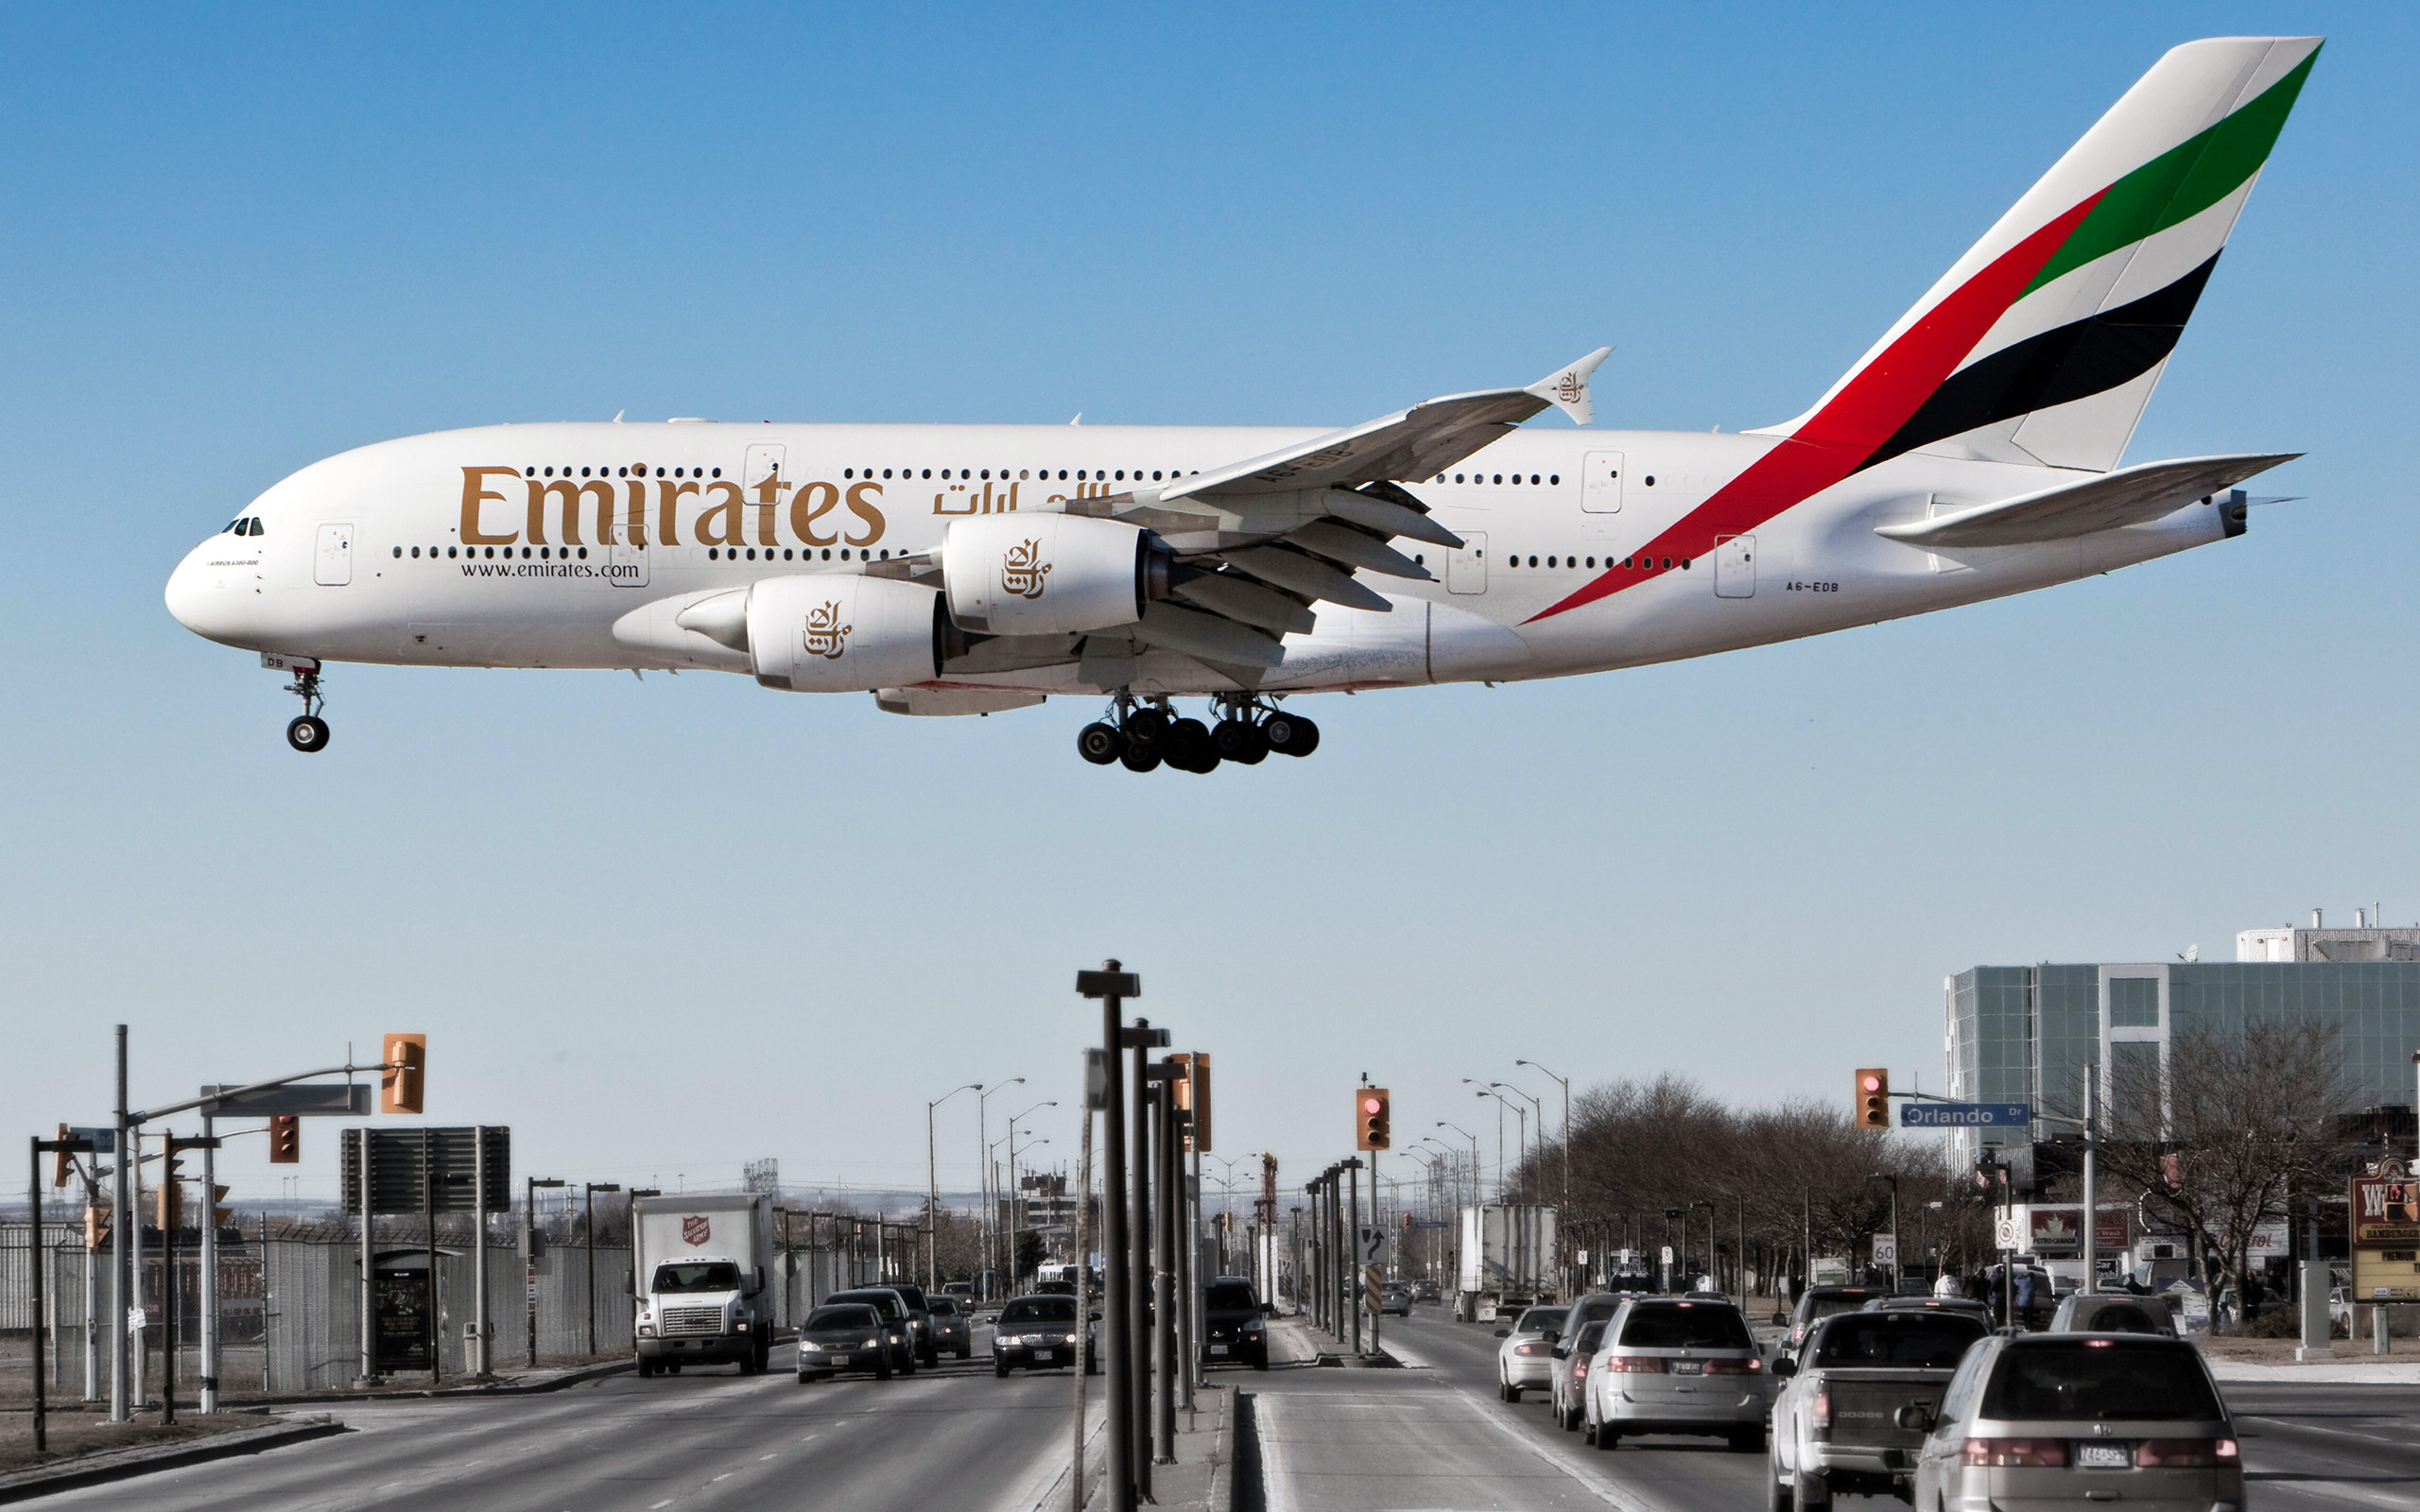 Airbus A380-800 Aircraft Airliners Emirates Airlines …